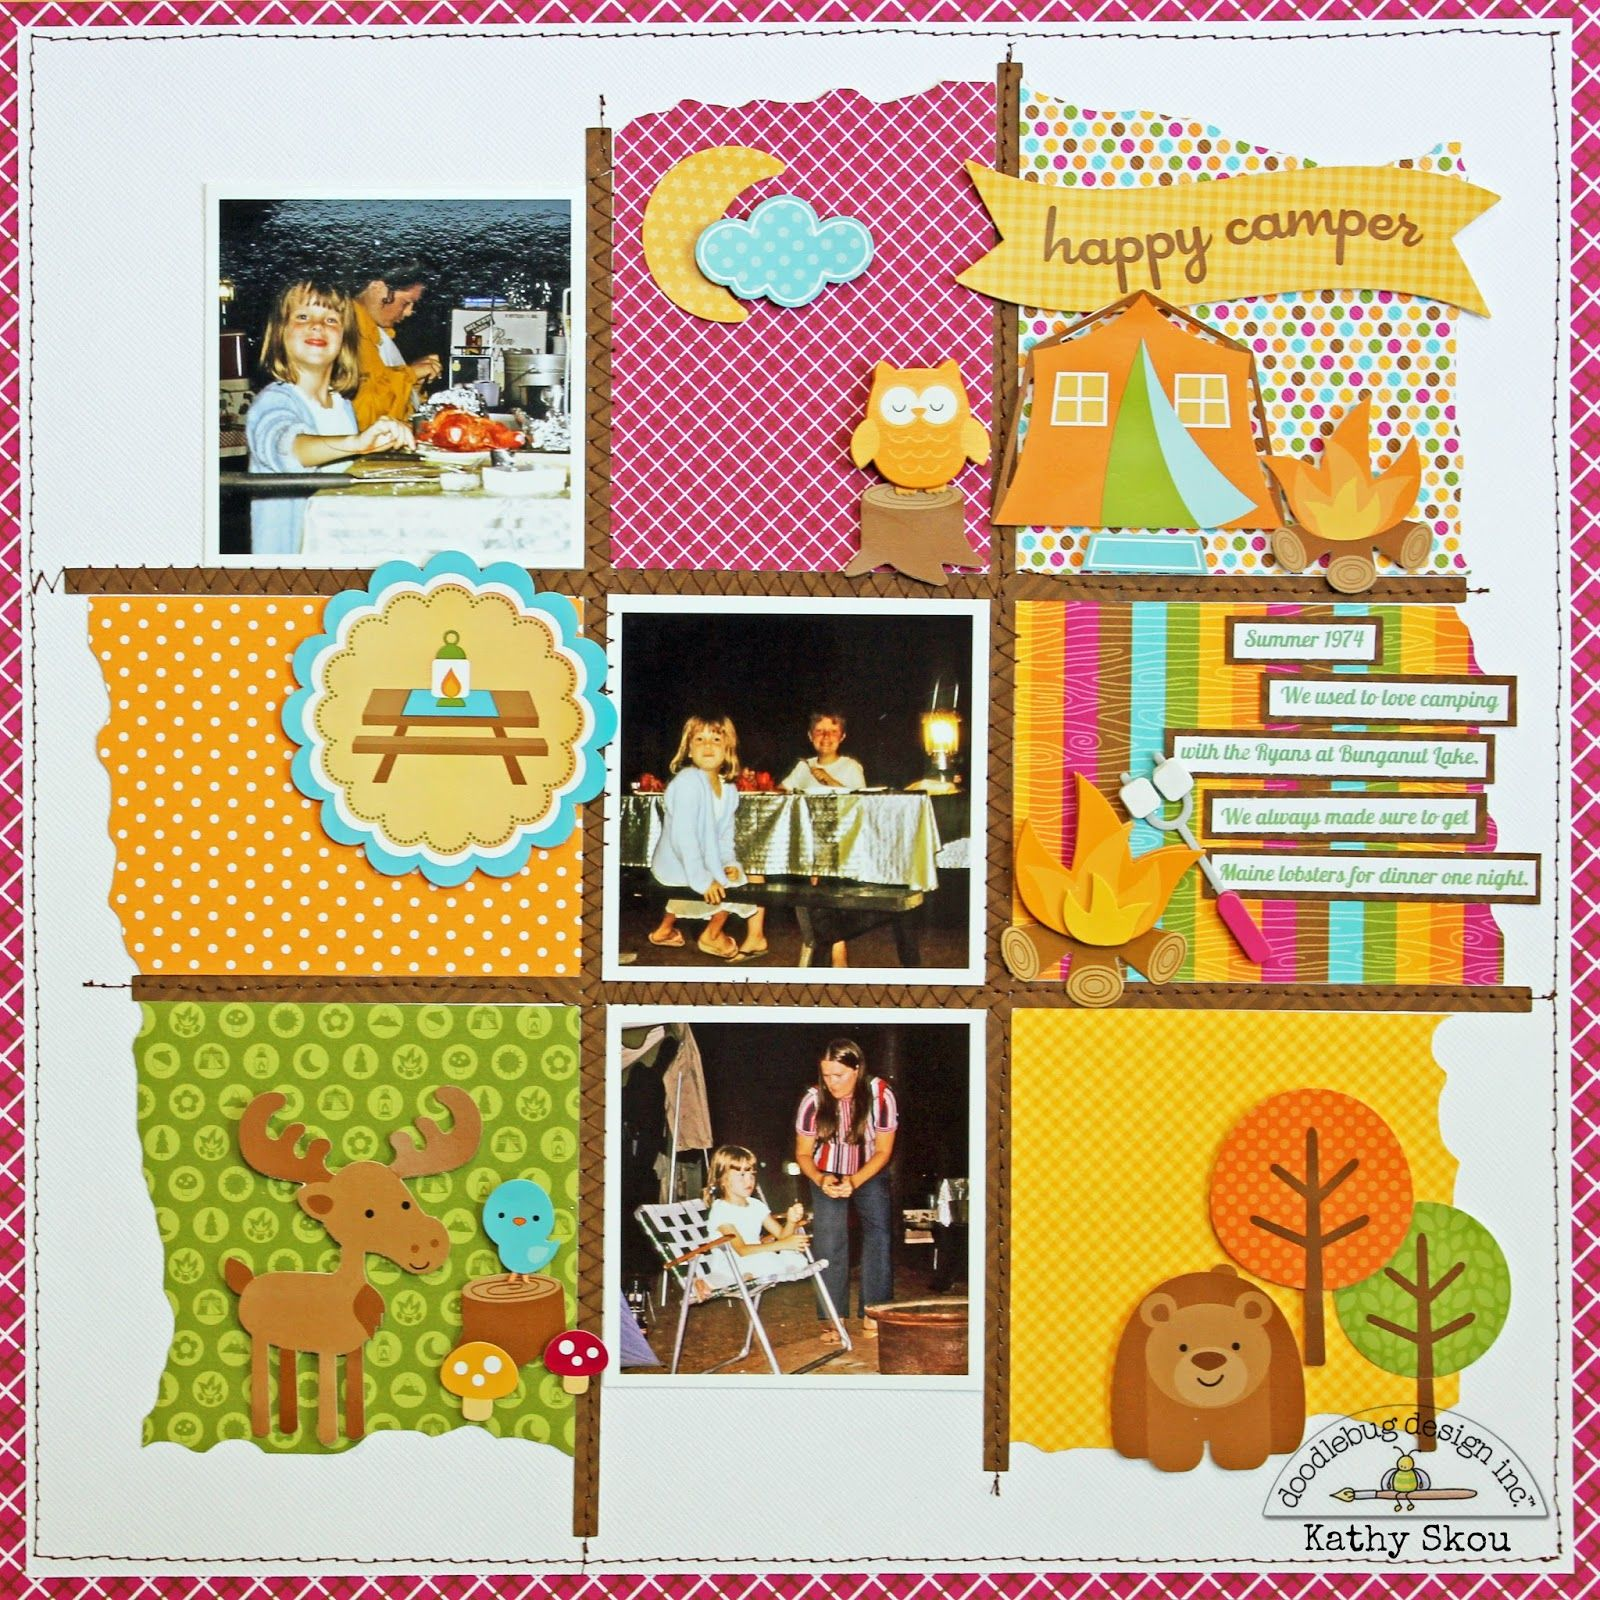 How to design scrapbook layouts -  Papercraft Scrapbook Layout Happy Camper Layout By Kathy Skou From Doodlebug Design